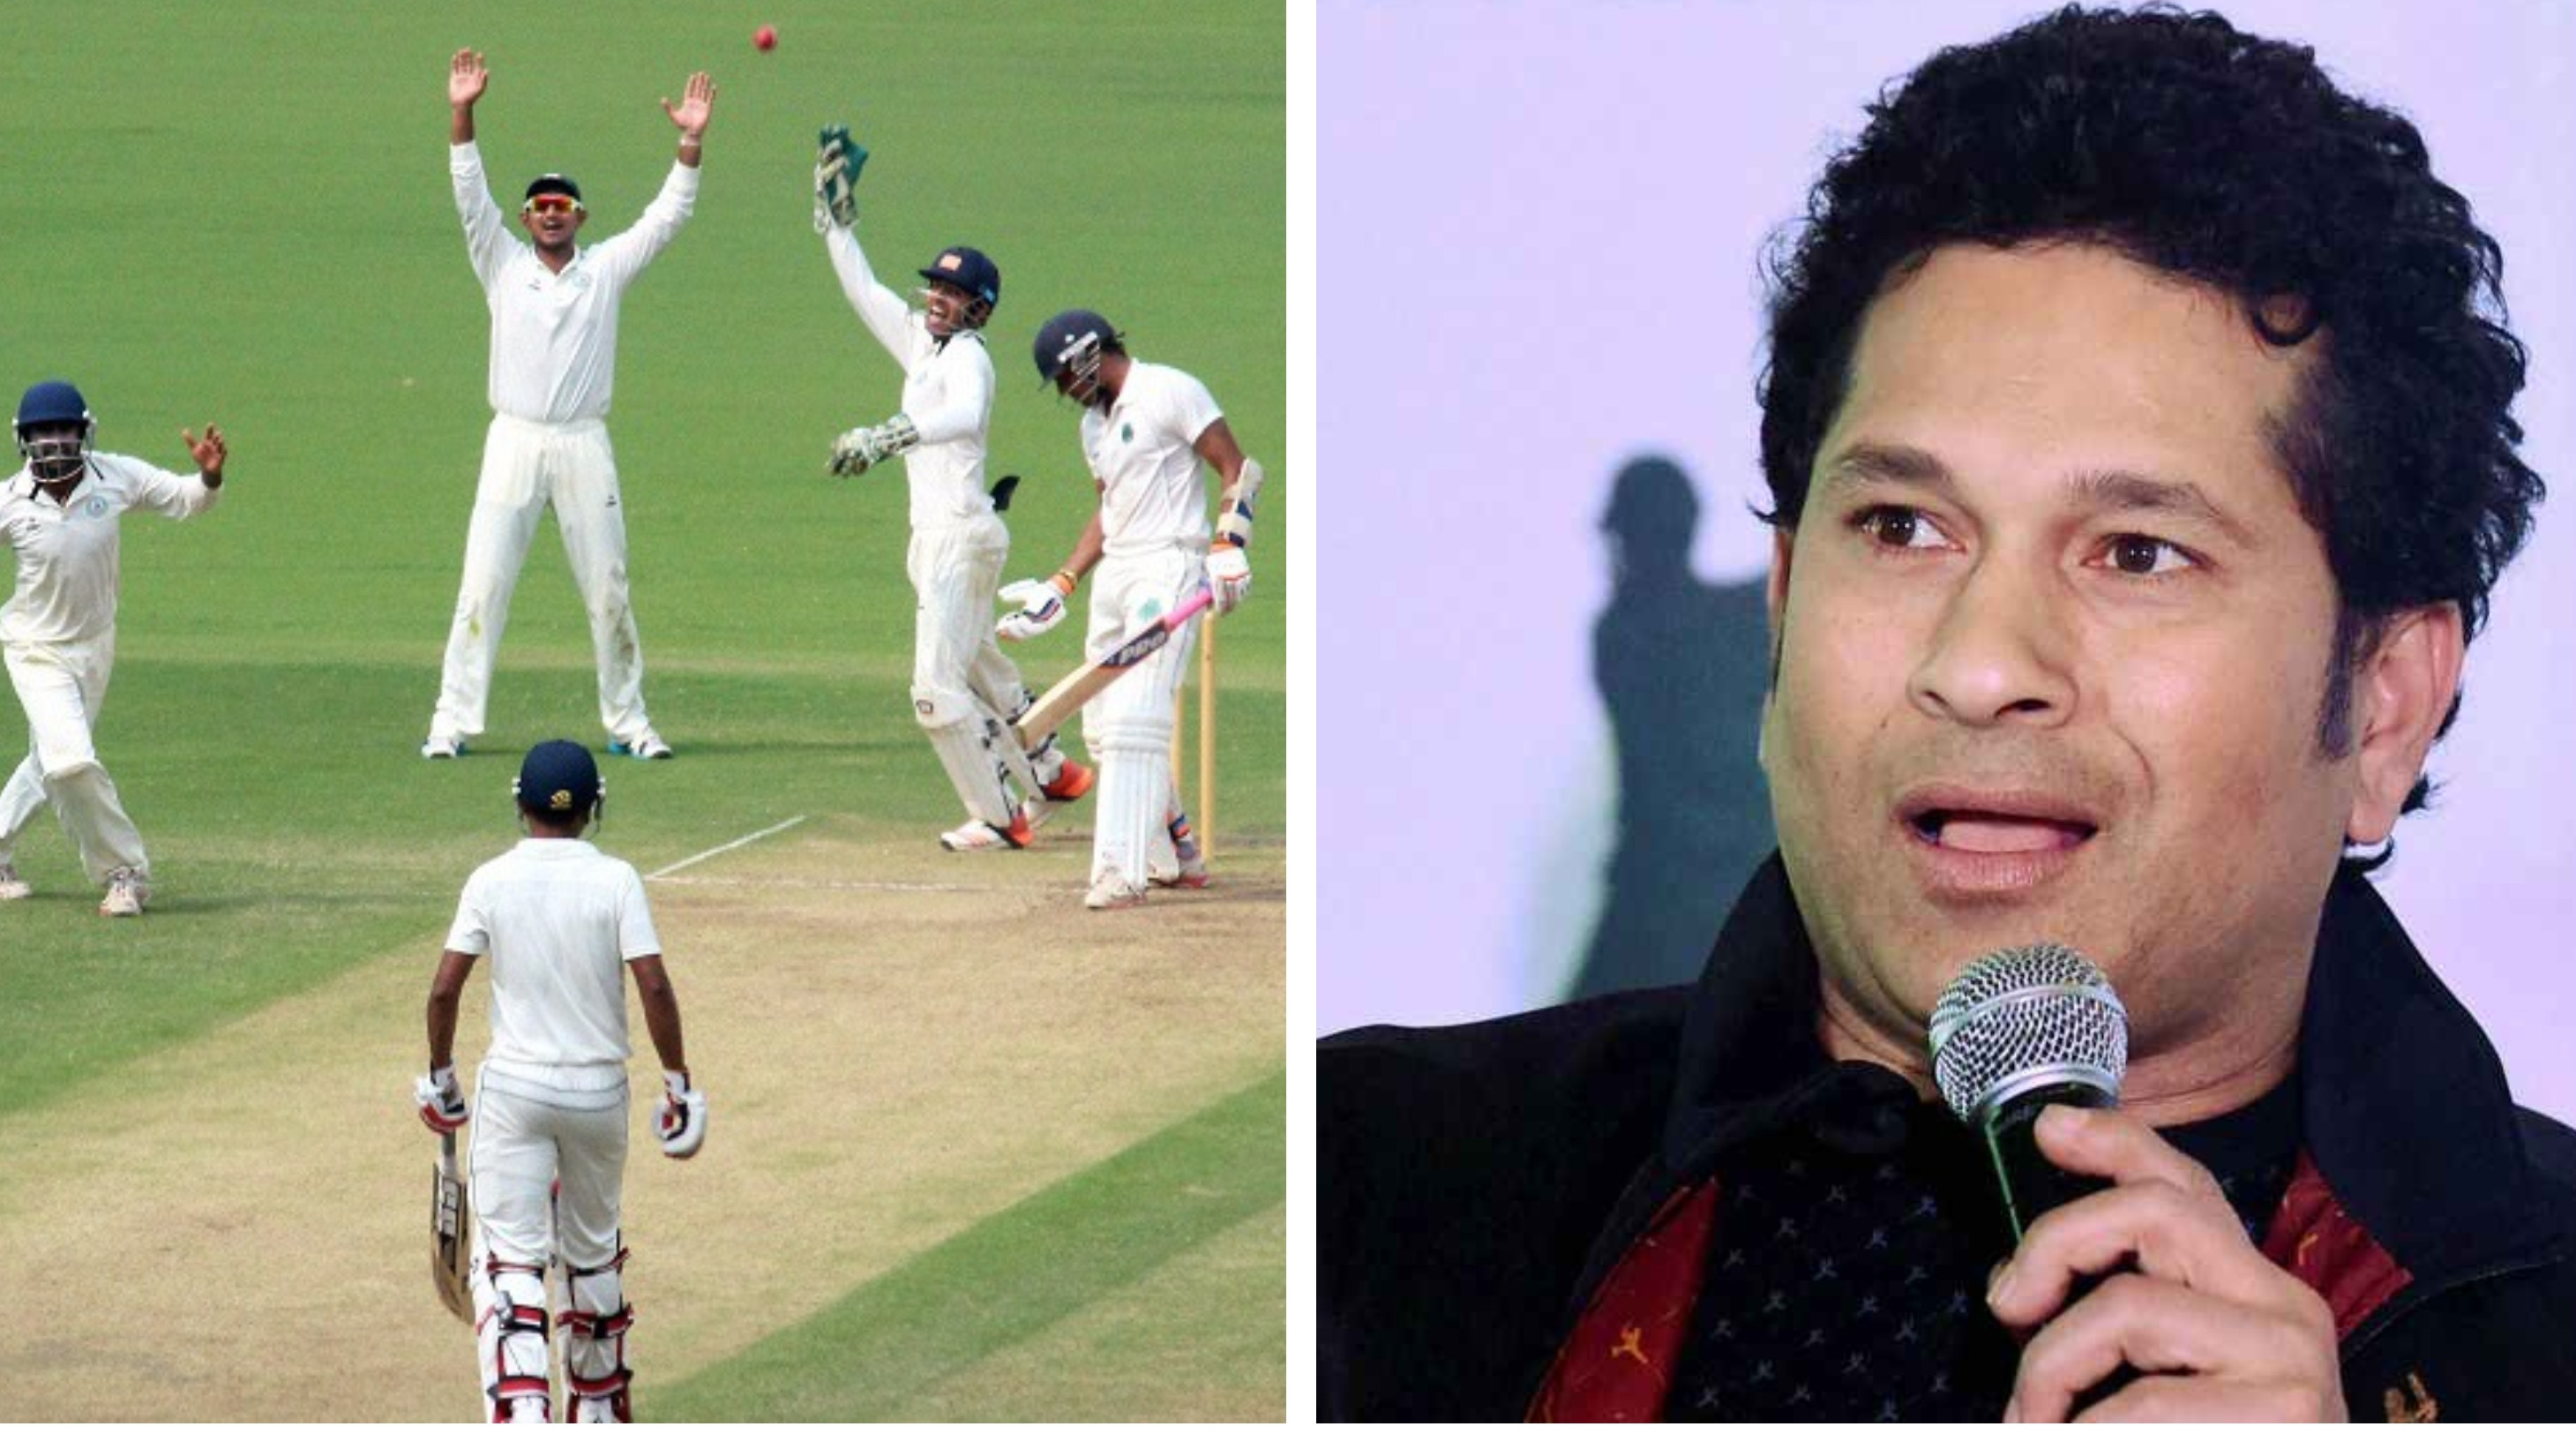 Sachin Tendulkar bats for challenging pitches in India's first-class cricket